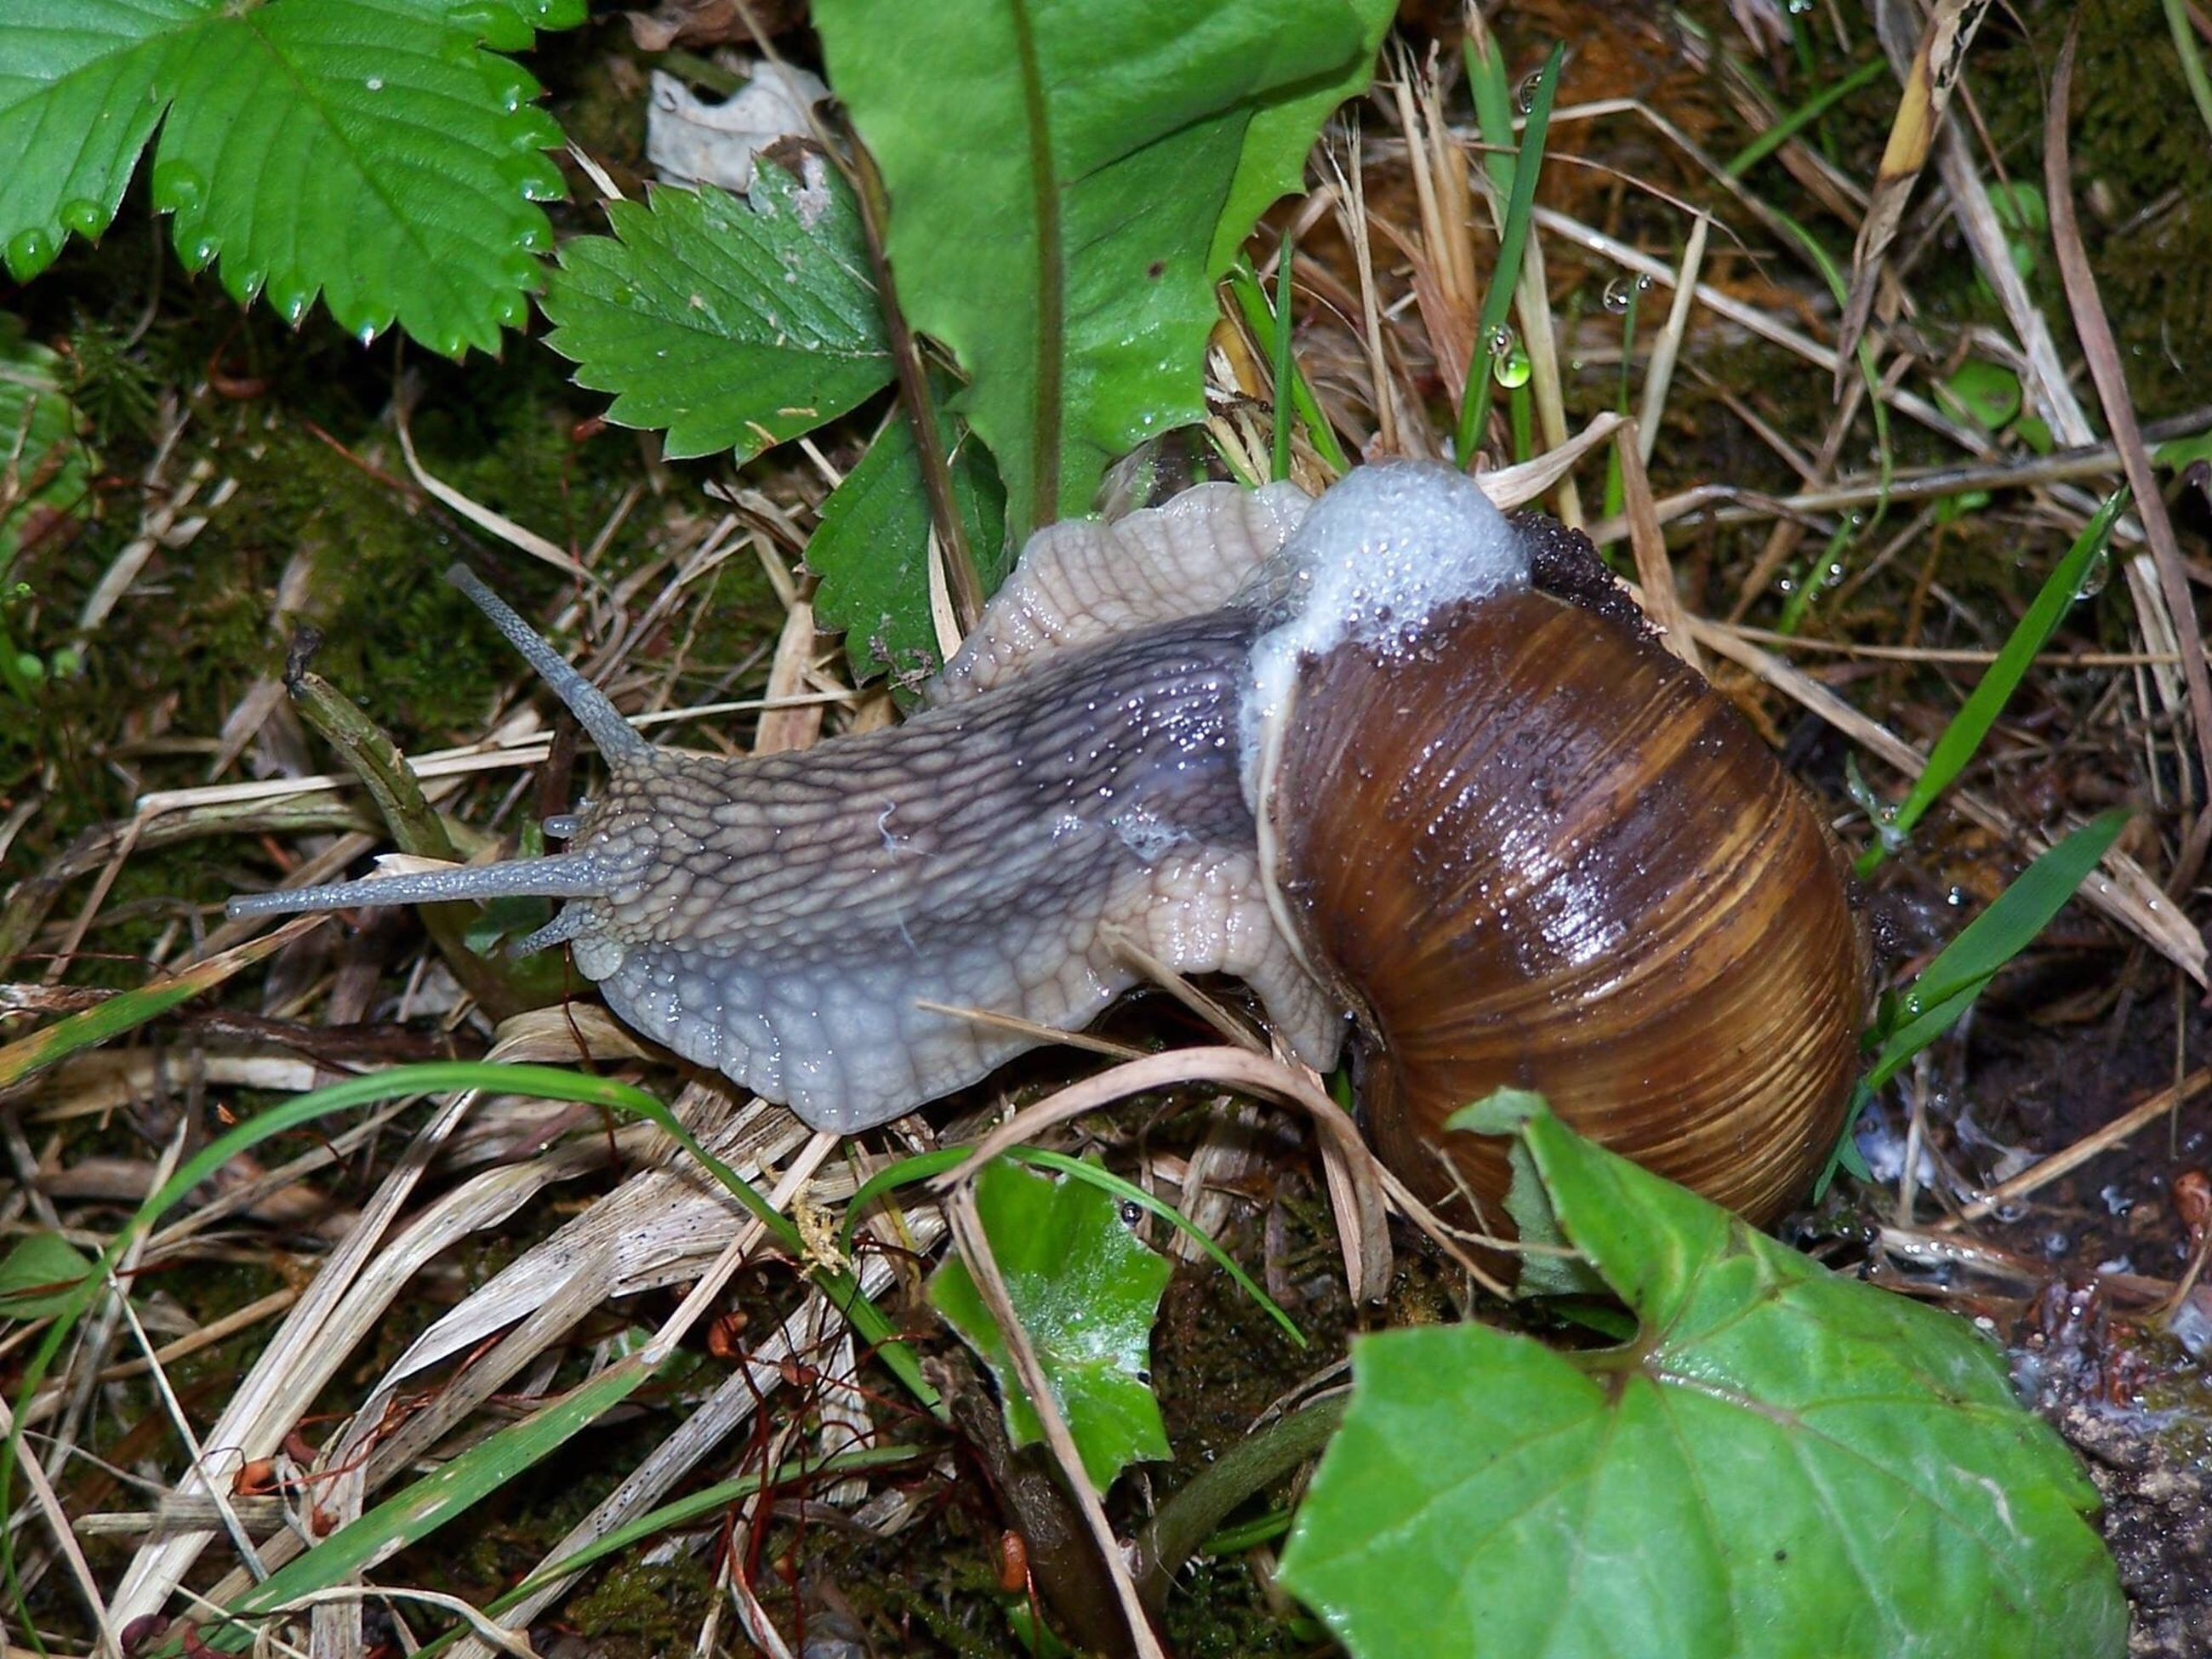 animal themes, animals in the wild, one animal, wildlife, snail, leaf, close-up, animal shell, nature, plant, green color, animal antenna, brown, outdoors, insect, mollusk, day, high angle view, focus on foreground, no people